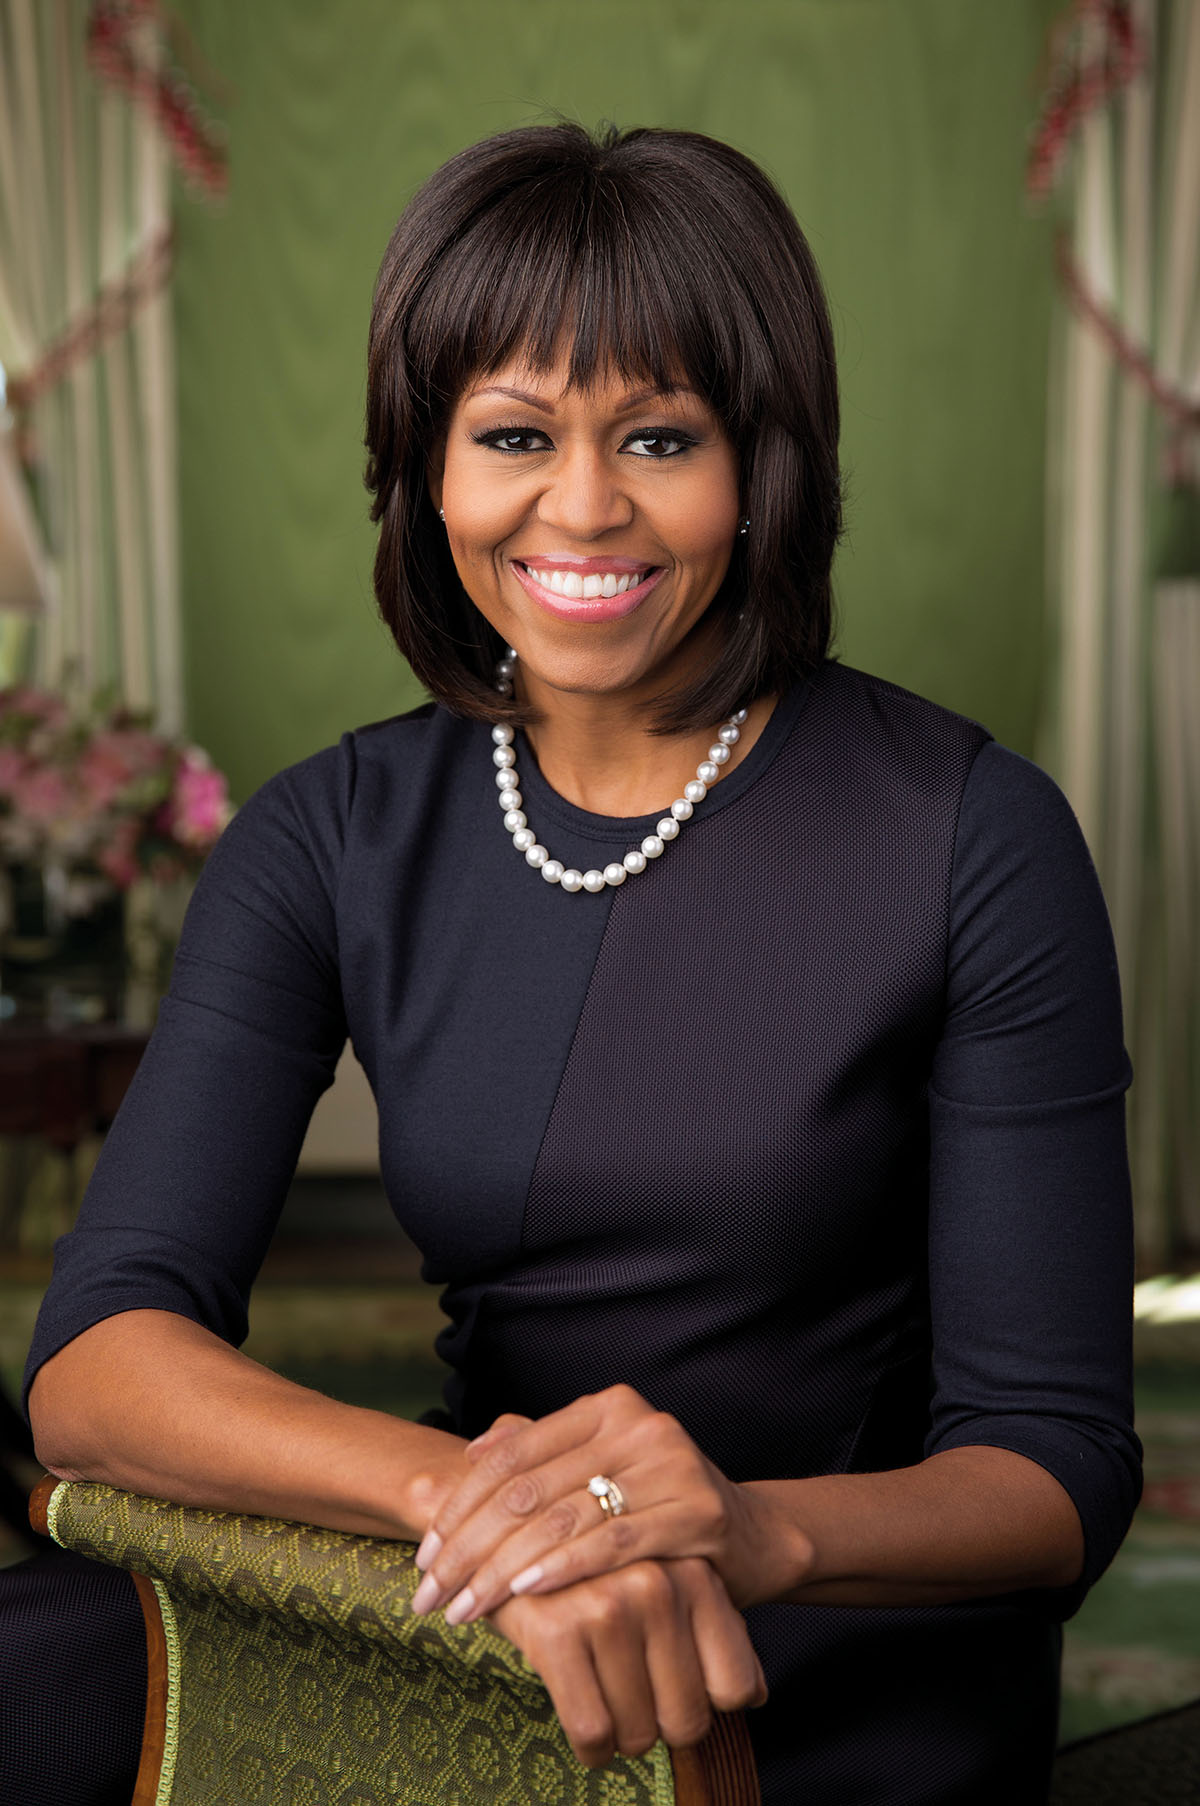 michelle obama ooom100 ooom magazin